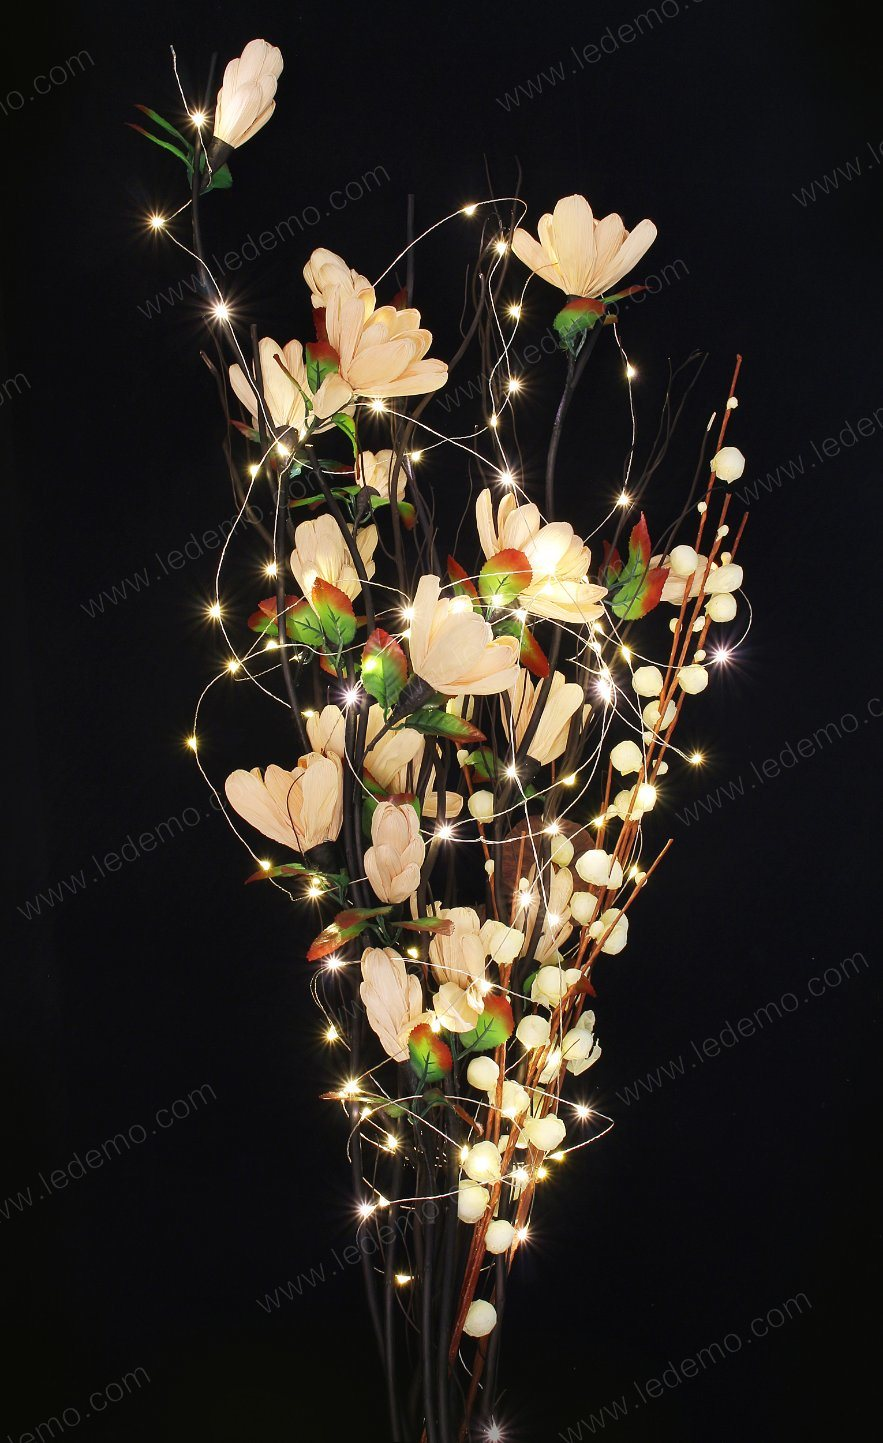 LED Decoration 10m 100LED Christmas Copper Light